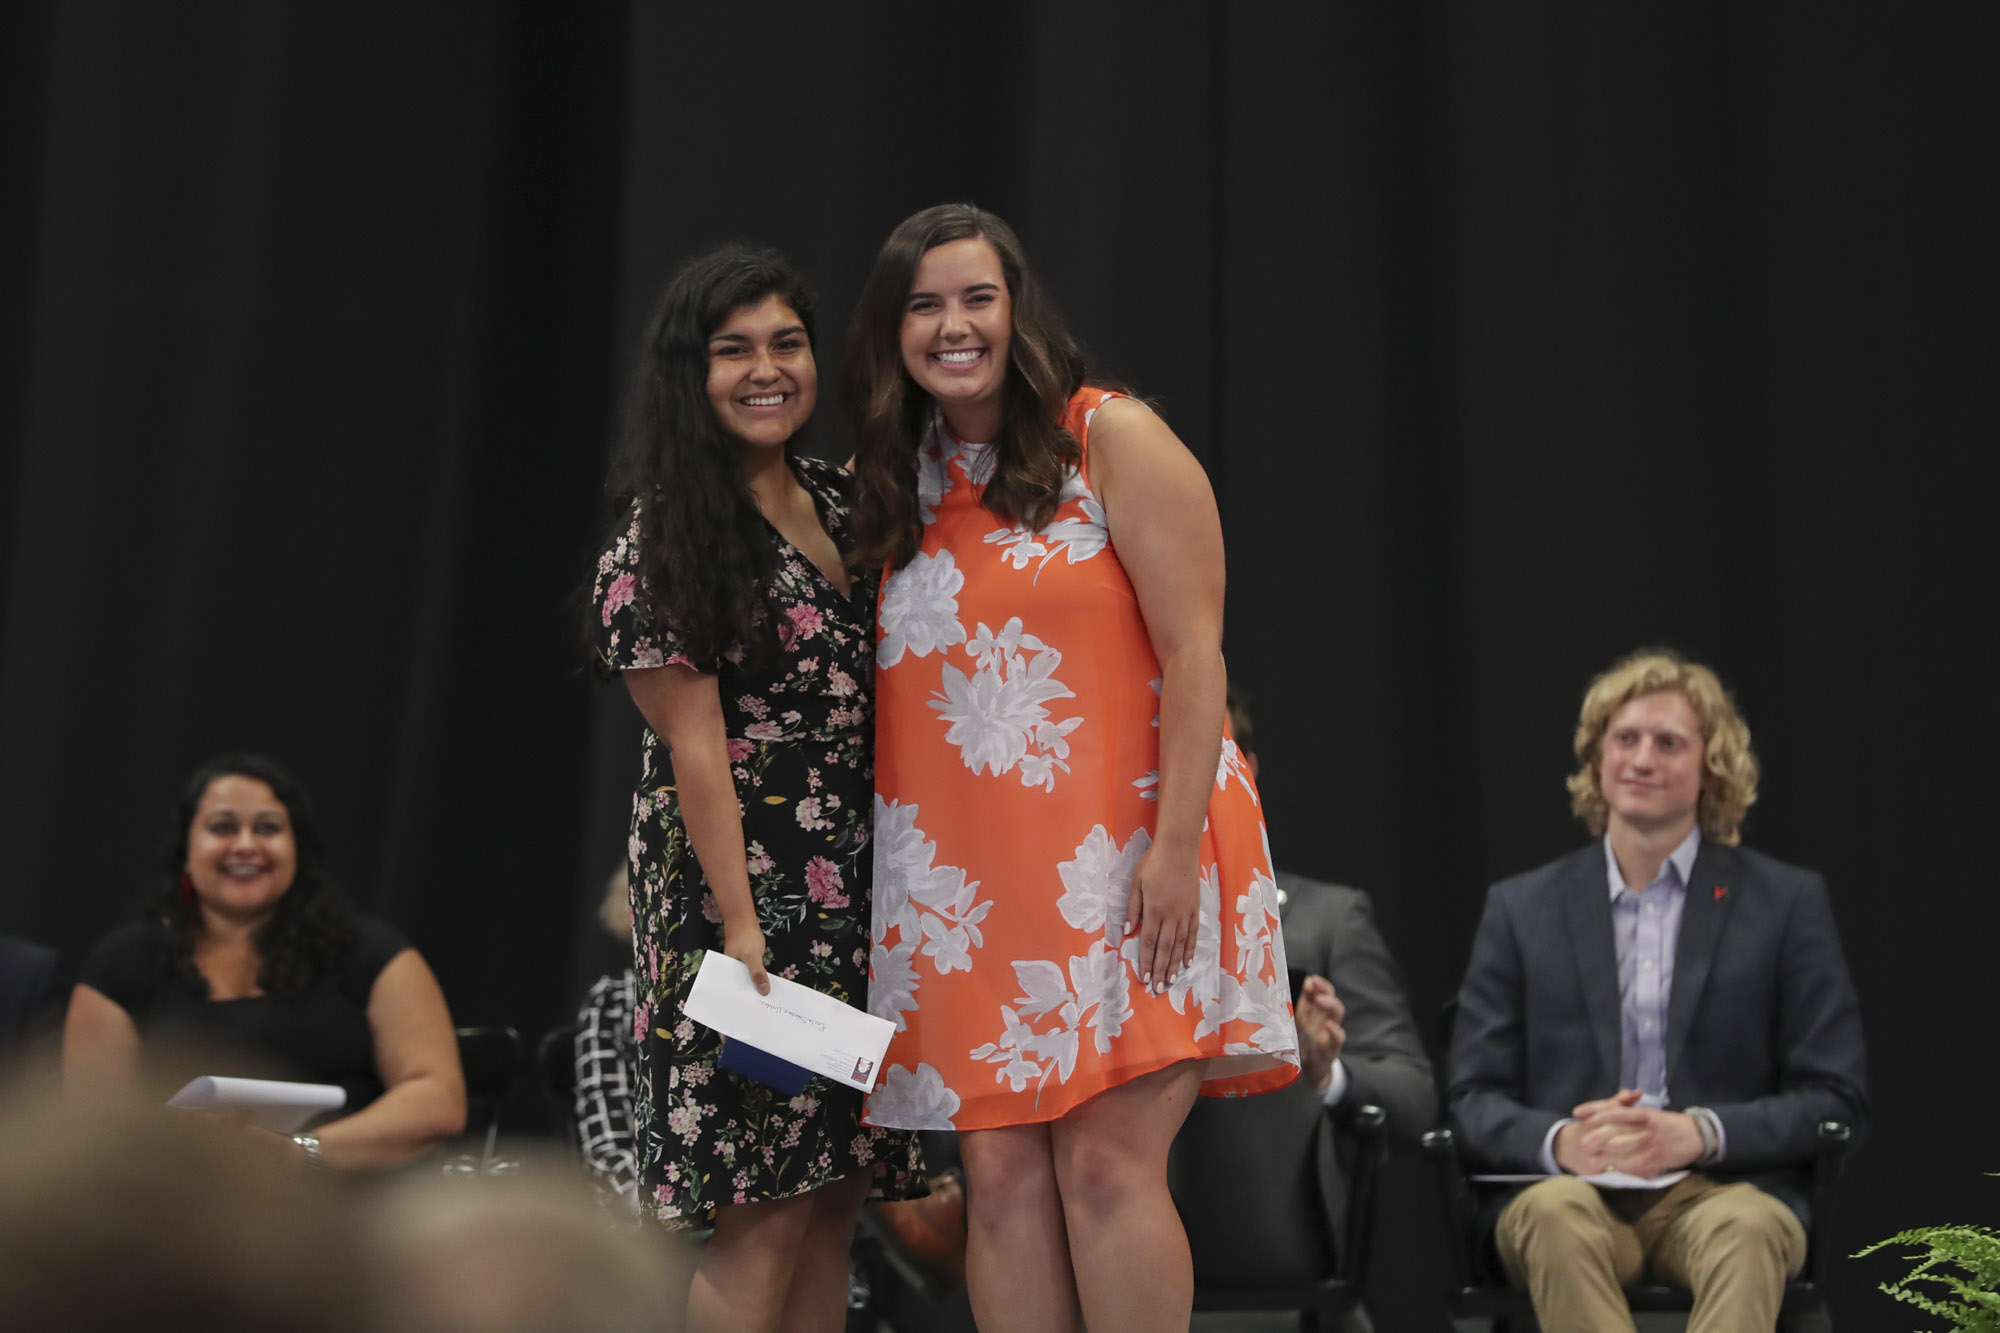 The Class of 2018, represented by trustee Holly Stevens, right, presented its Class Award for Community Service to education graduate Paola Sanchez Valdez.